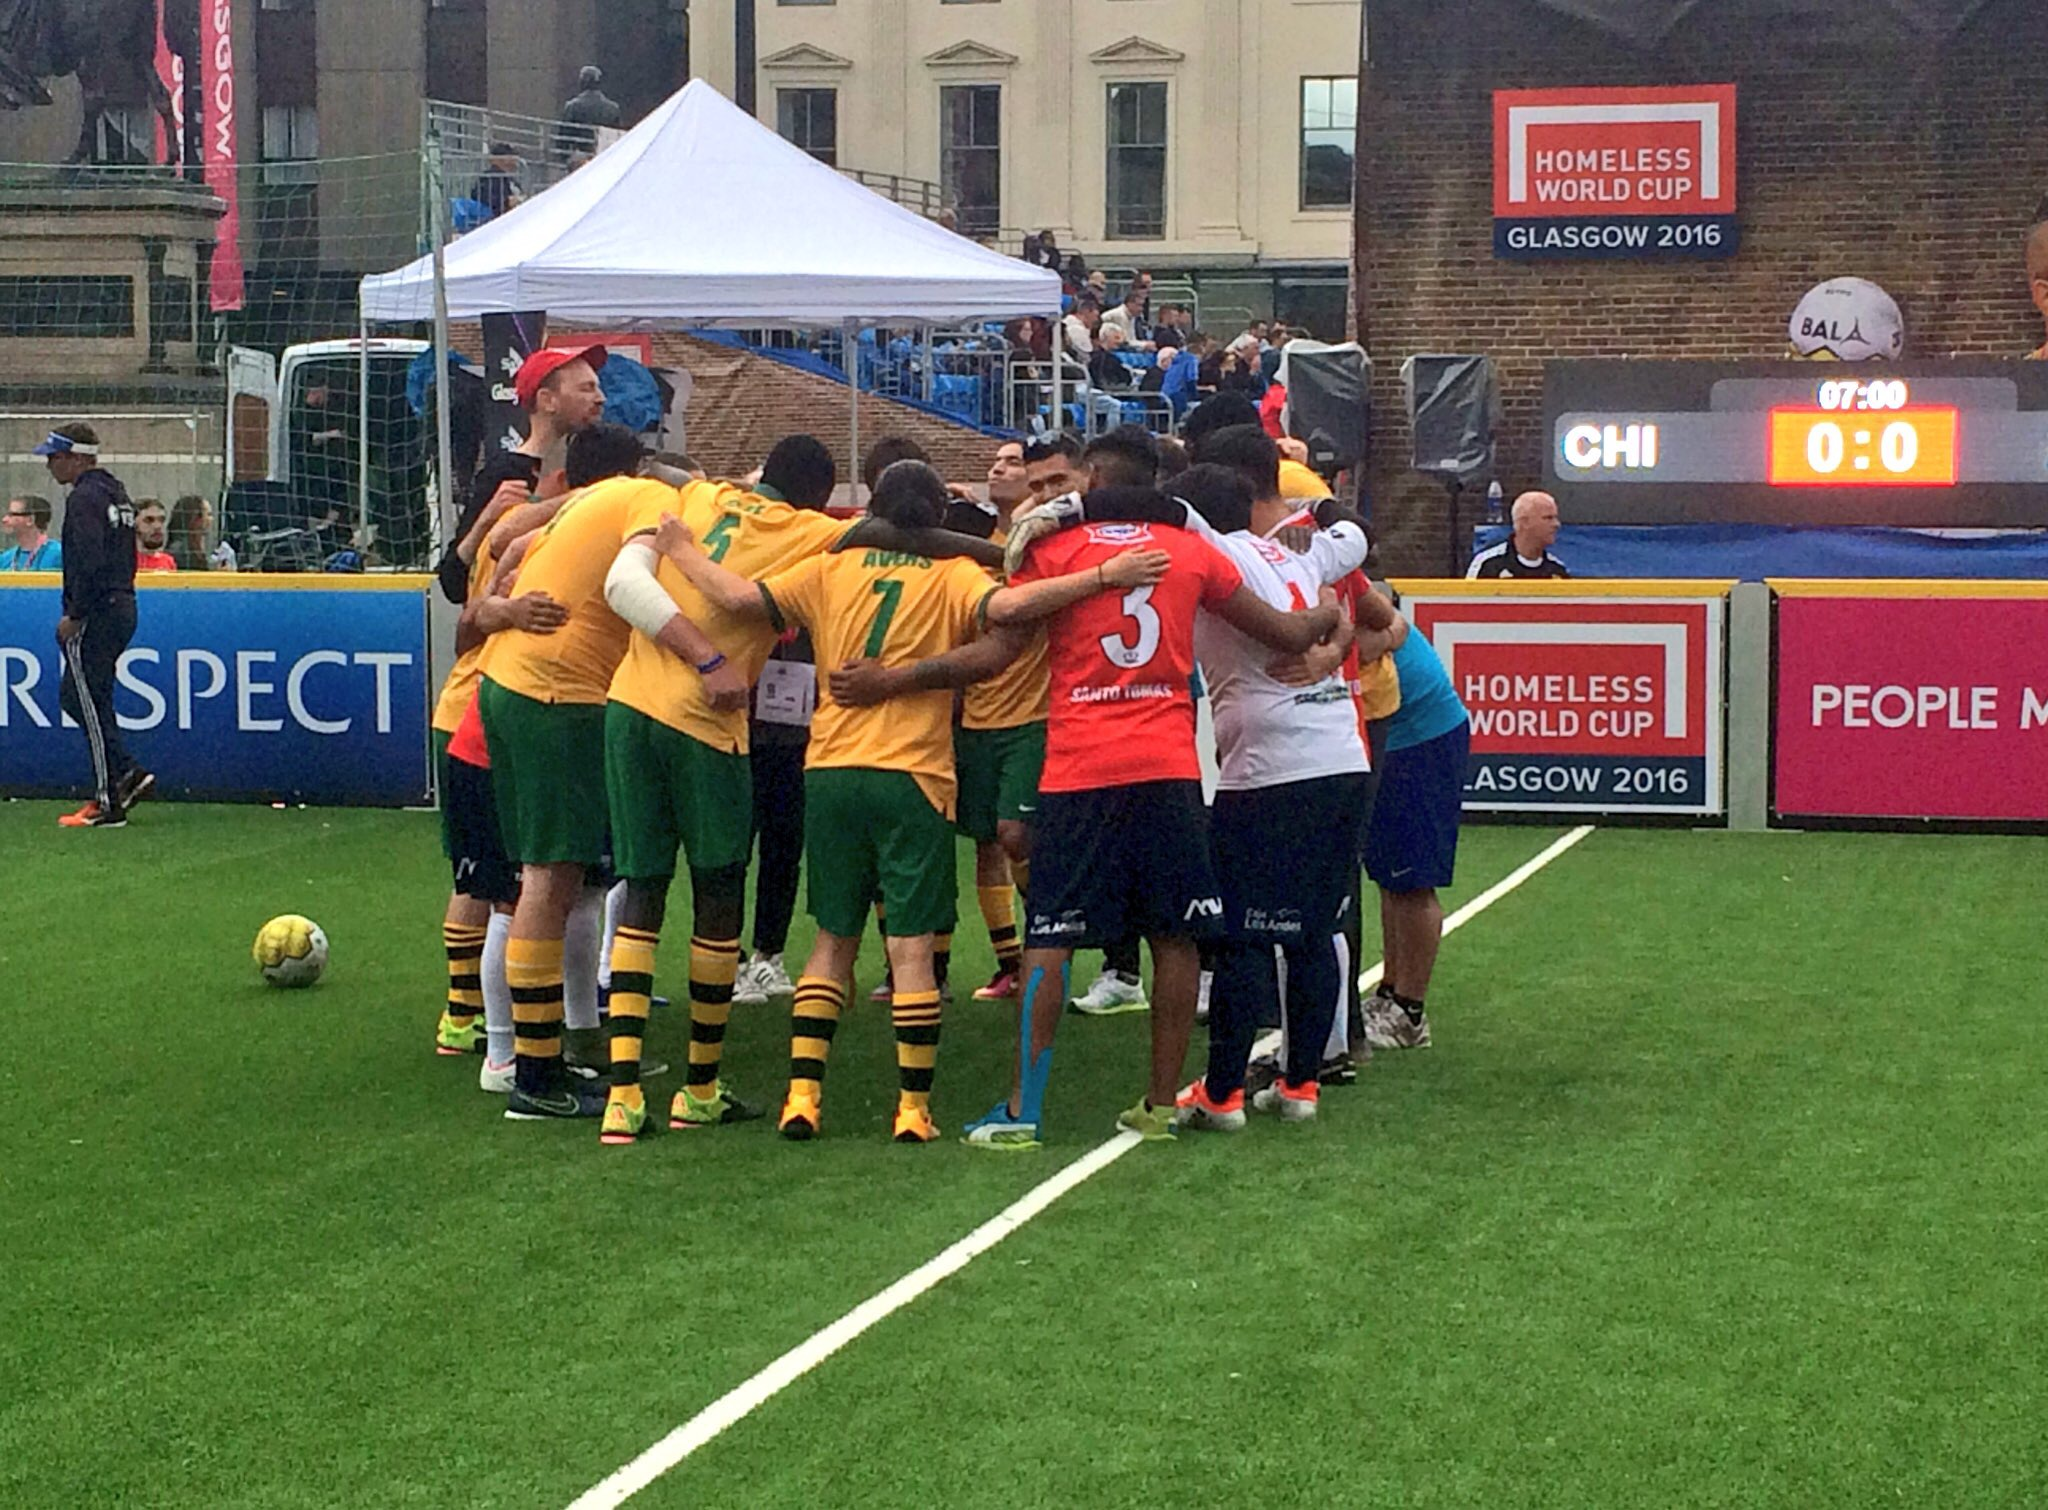 Australia and Chile in a team huddle after their match at the Homeless World Cup in Glasgow.